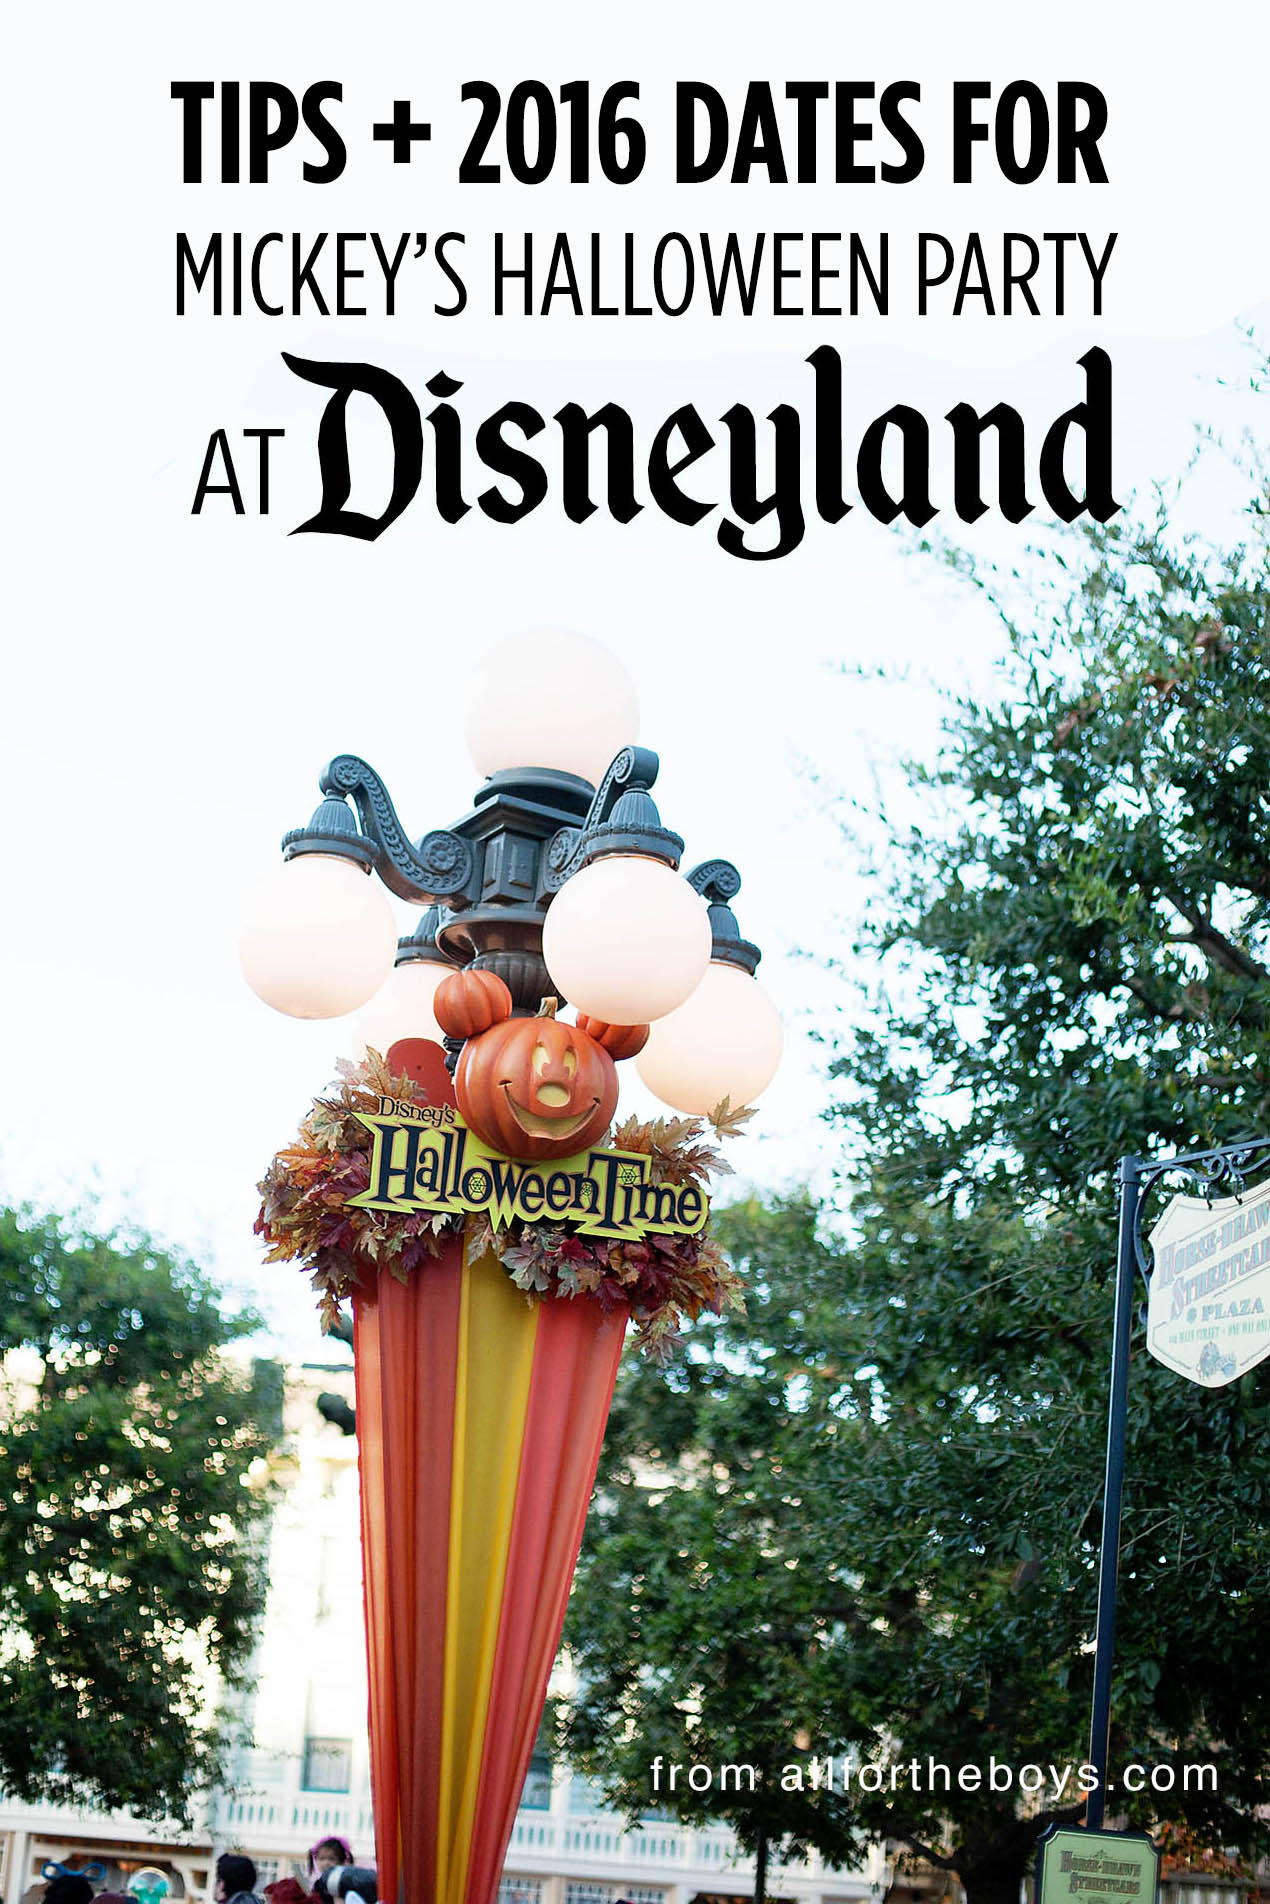 Halloween Time at Disneyland + 2016 Mickey's Halloween Party Dates ...